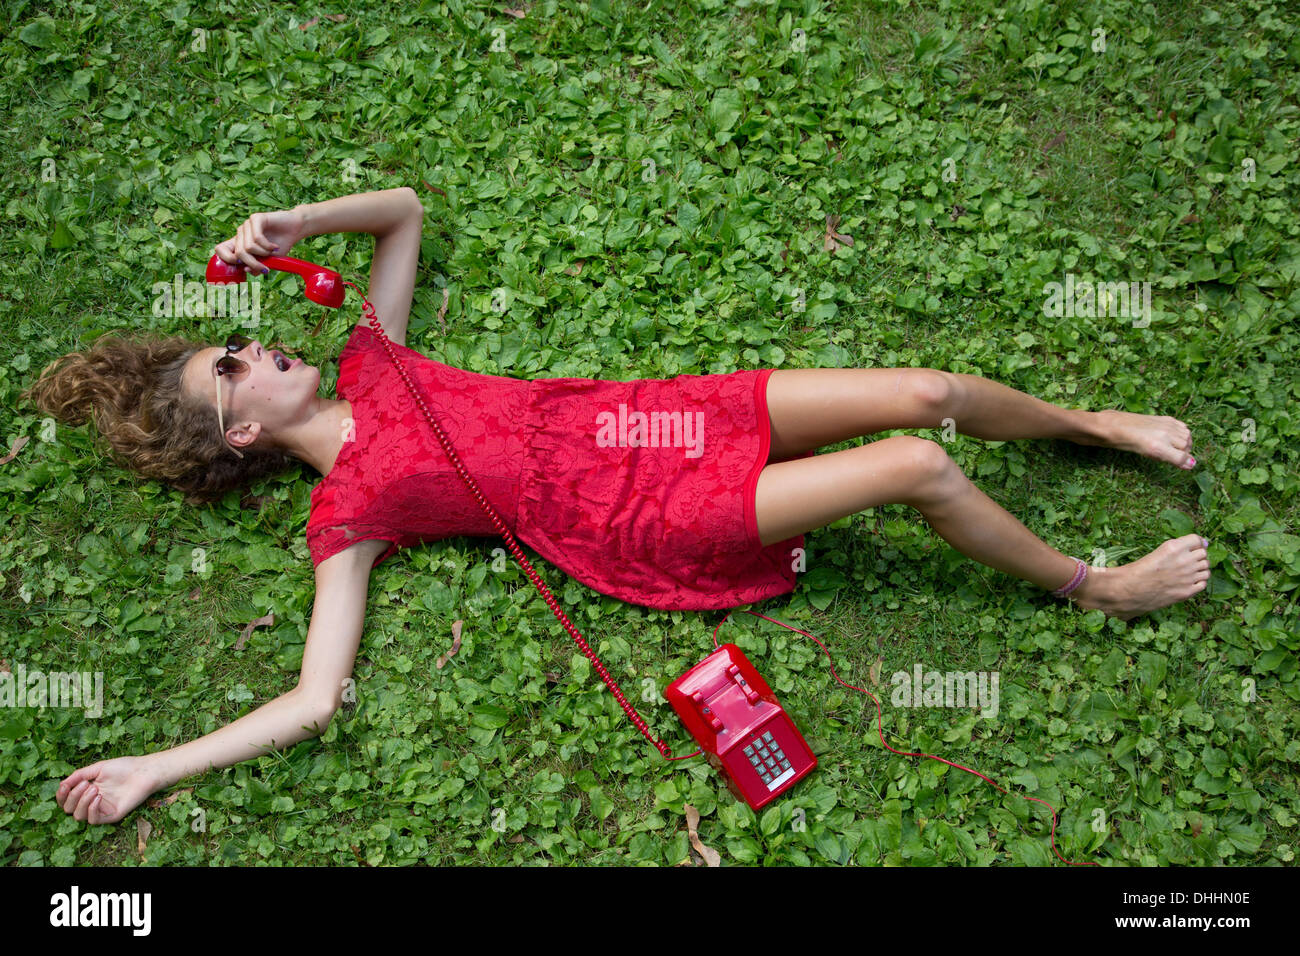 Teenage girl lying on grass with red telephone Stock Photo